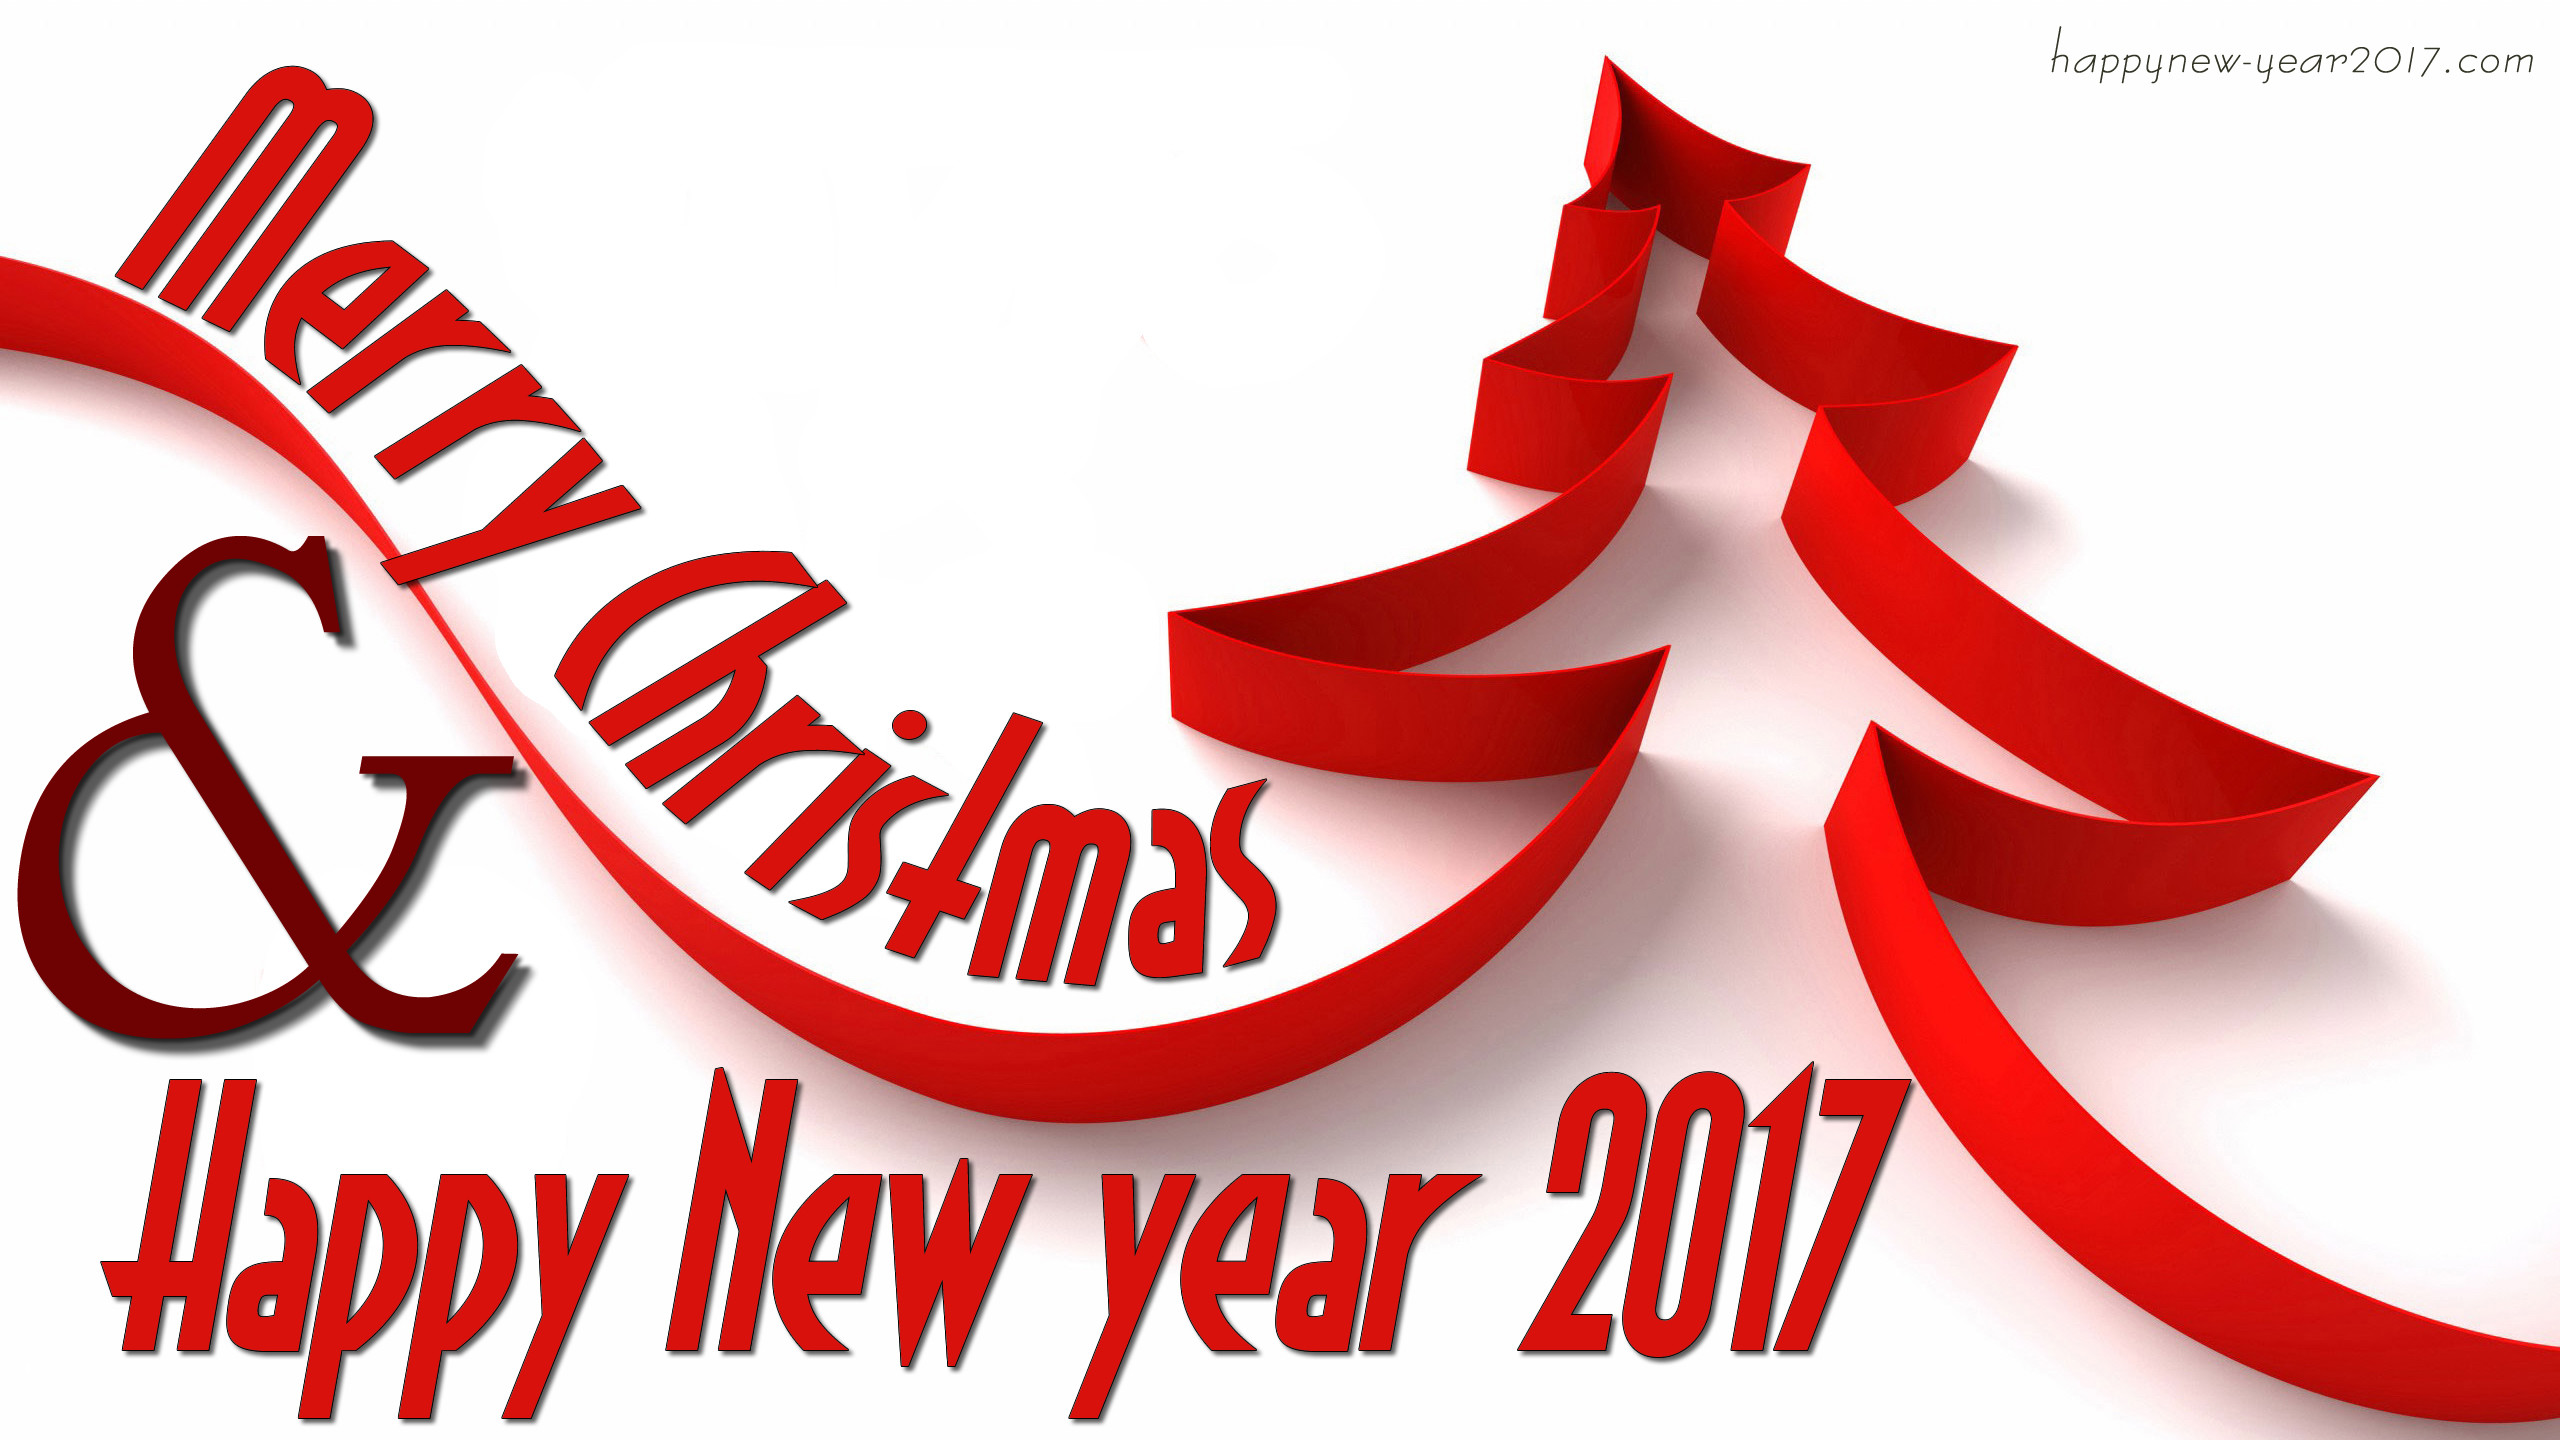 Merry Christmas And Happy New Year 2017 Wallpaper (22)